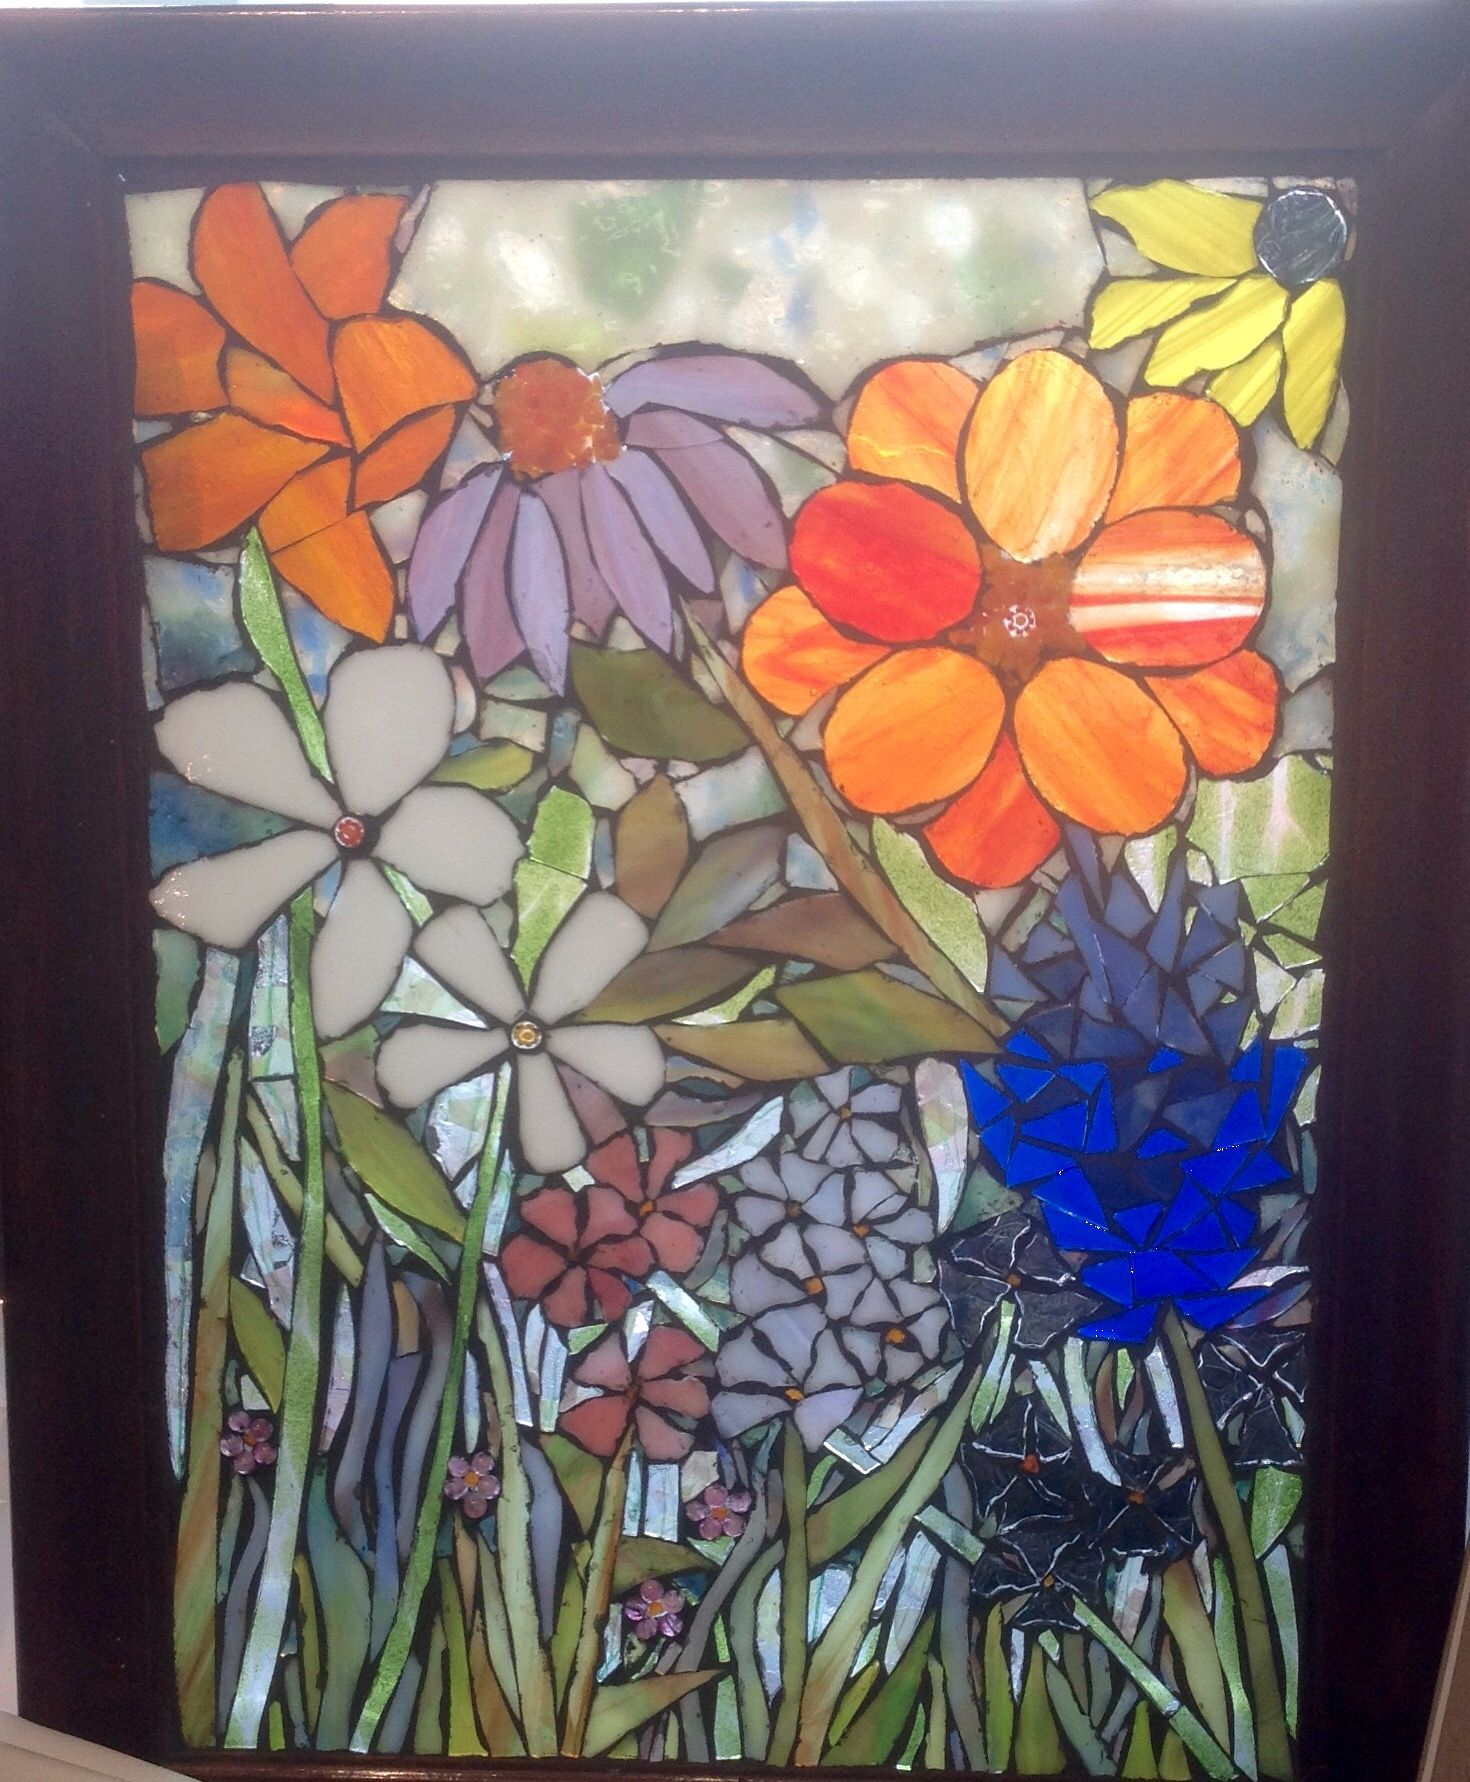 Mosaic flower garden by Lisa Skibenes  Stained glass, beads, frit